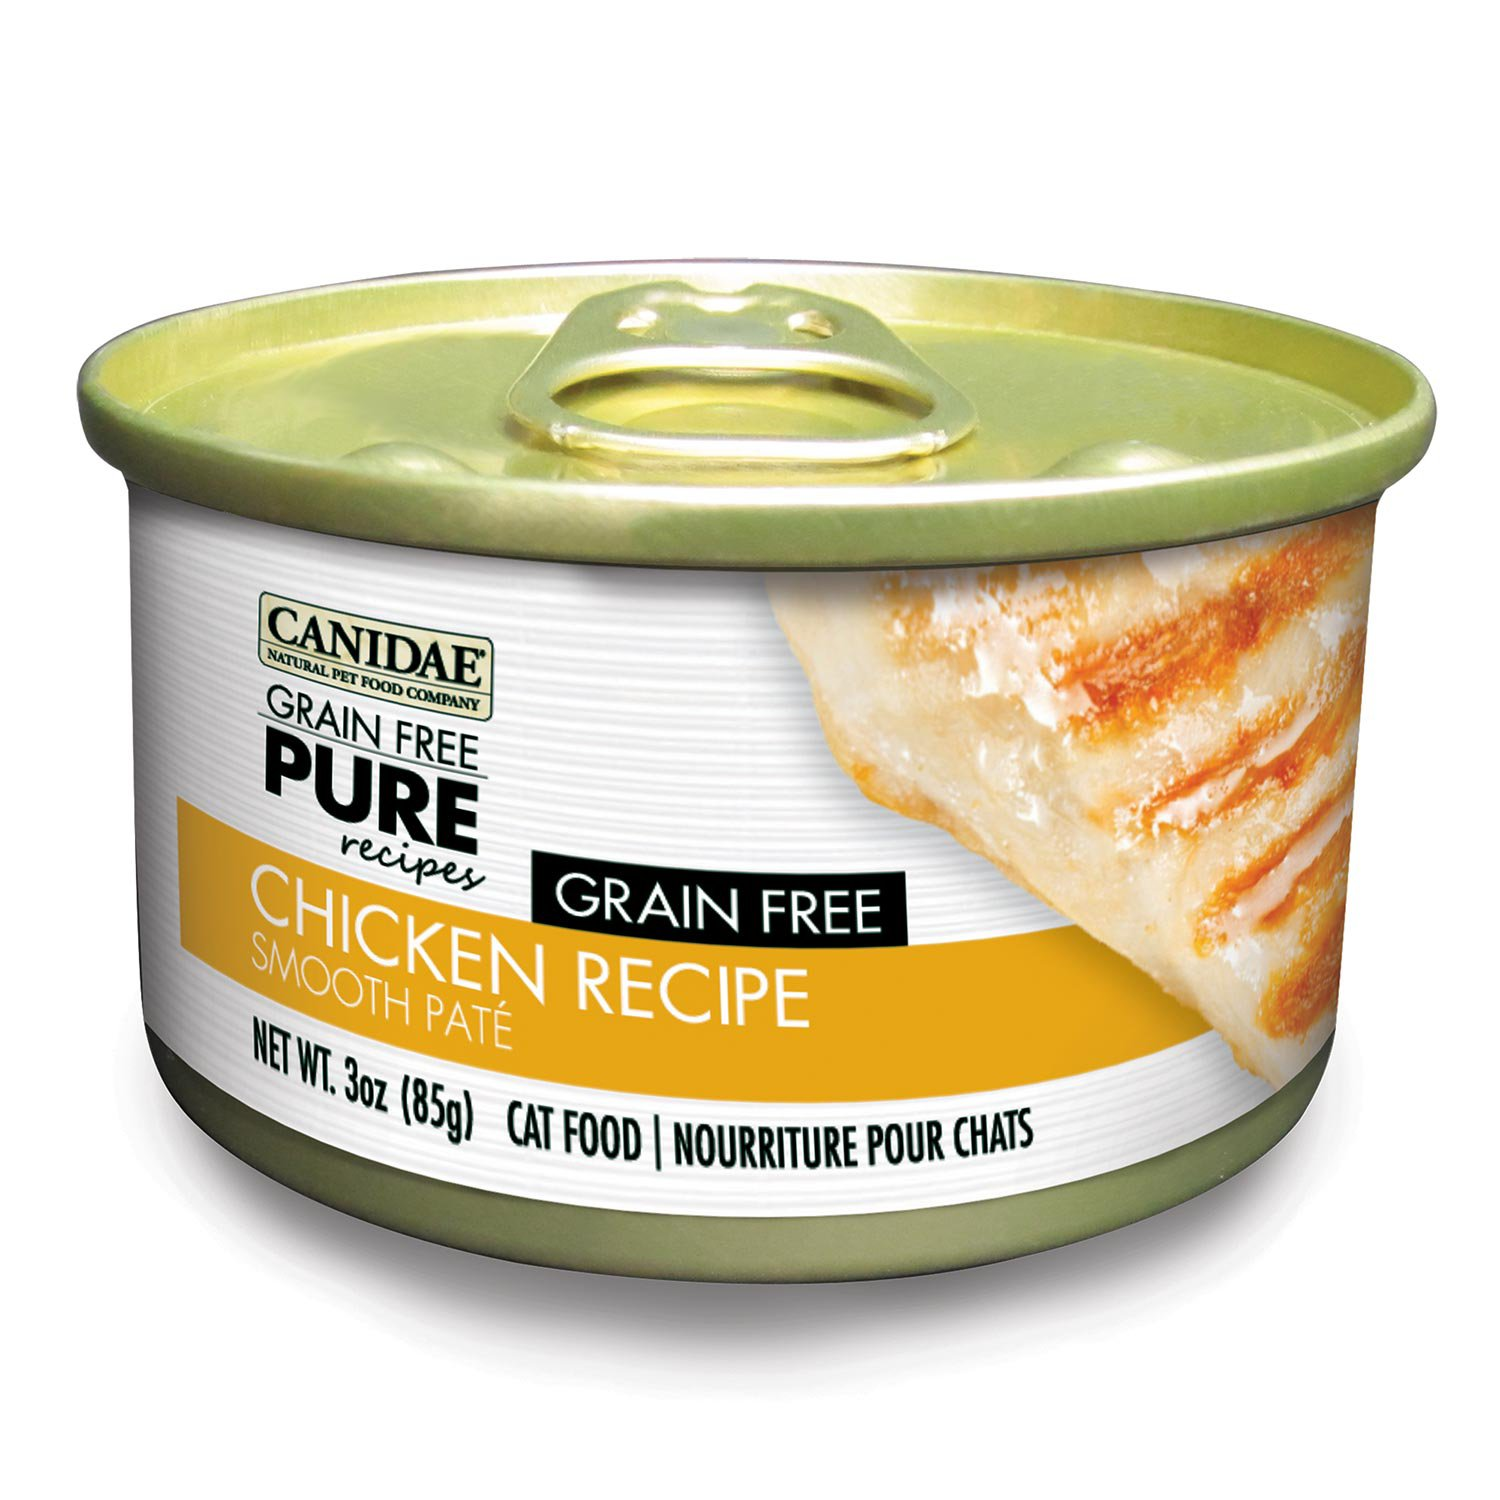 Canidae Grain Free Pure Recipes Chicken Canned Cat Food